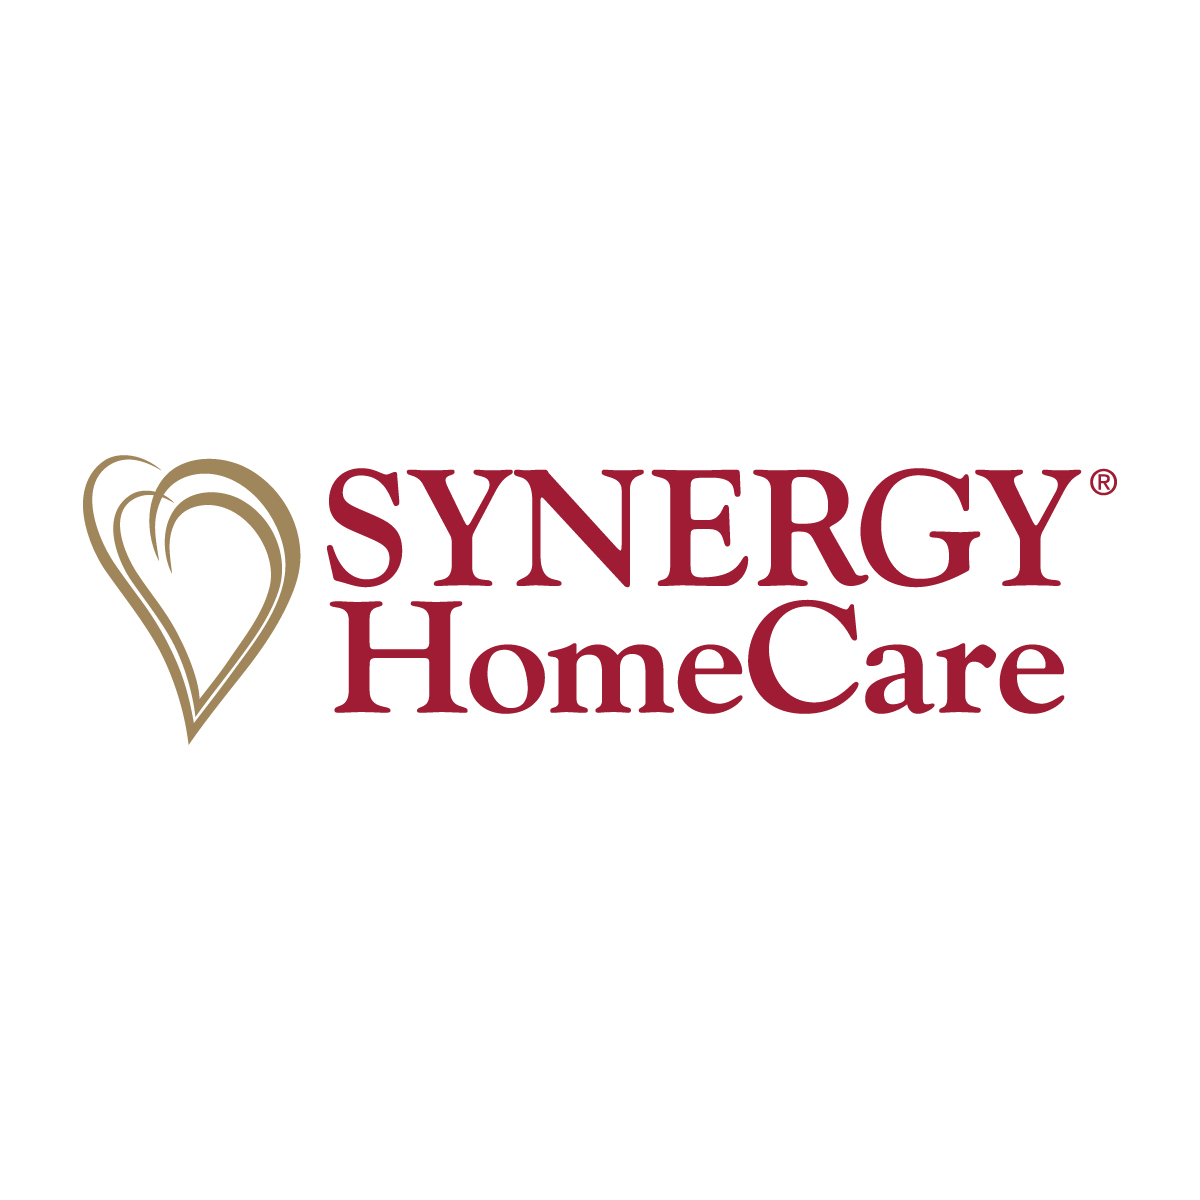 SYNERGY HomeCare - Issaquah, WA - Home Health Care Services